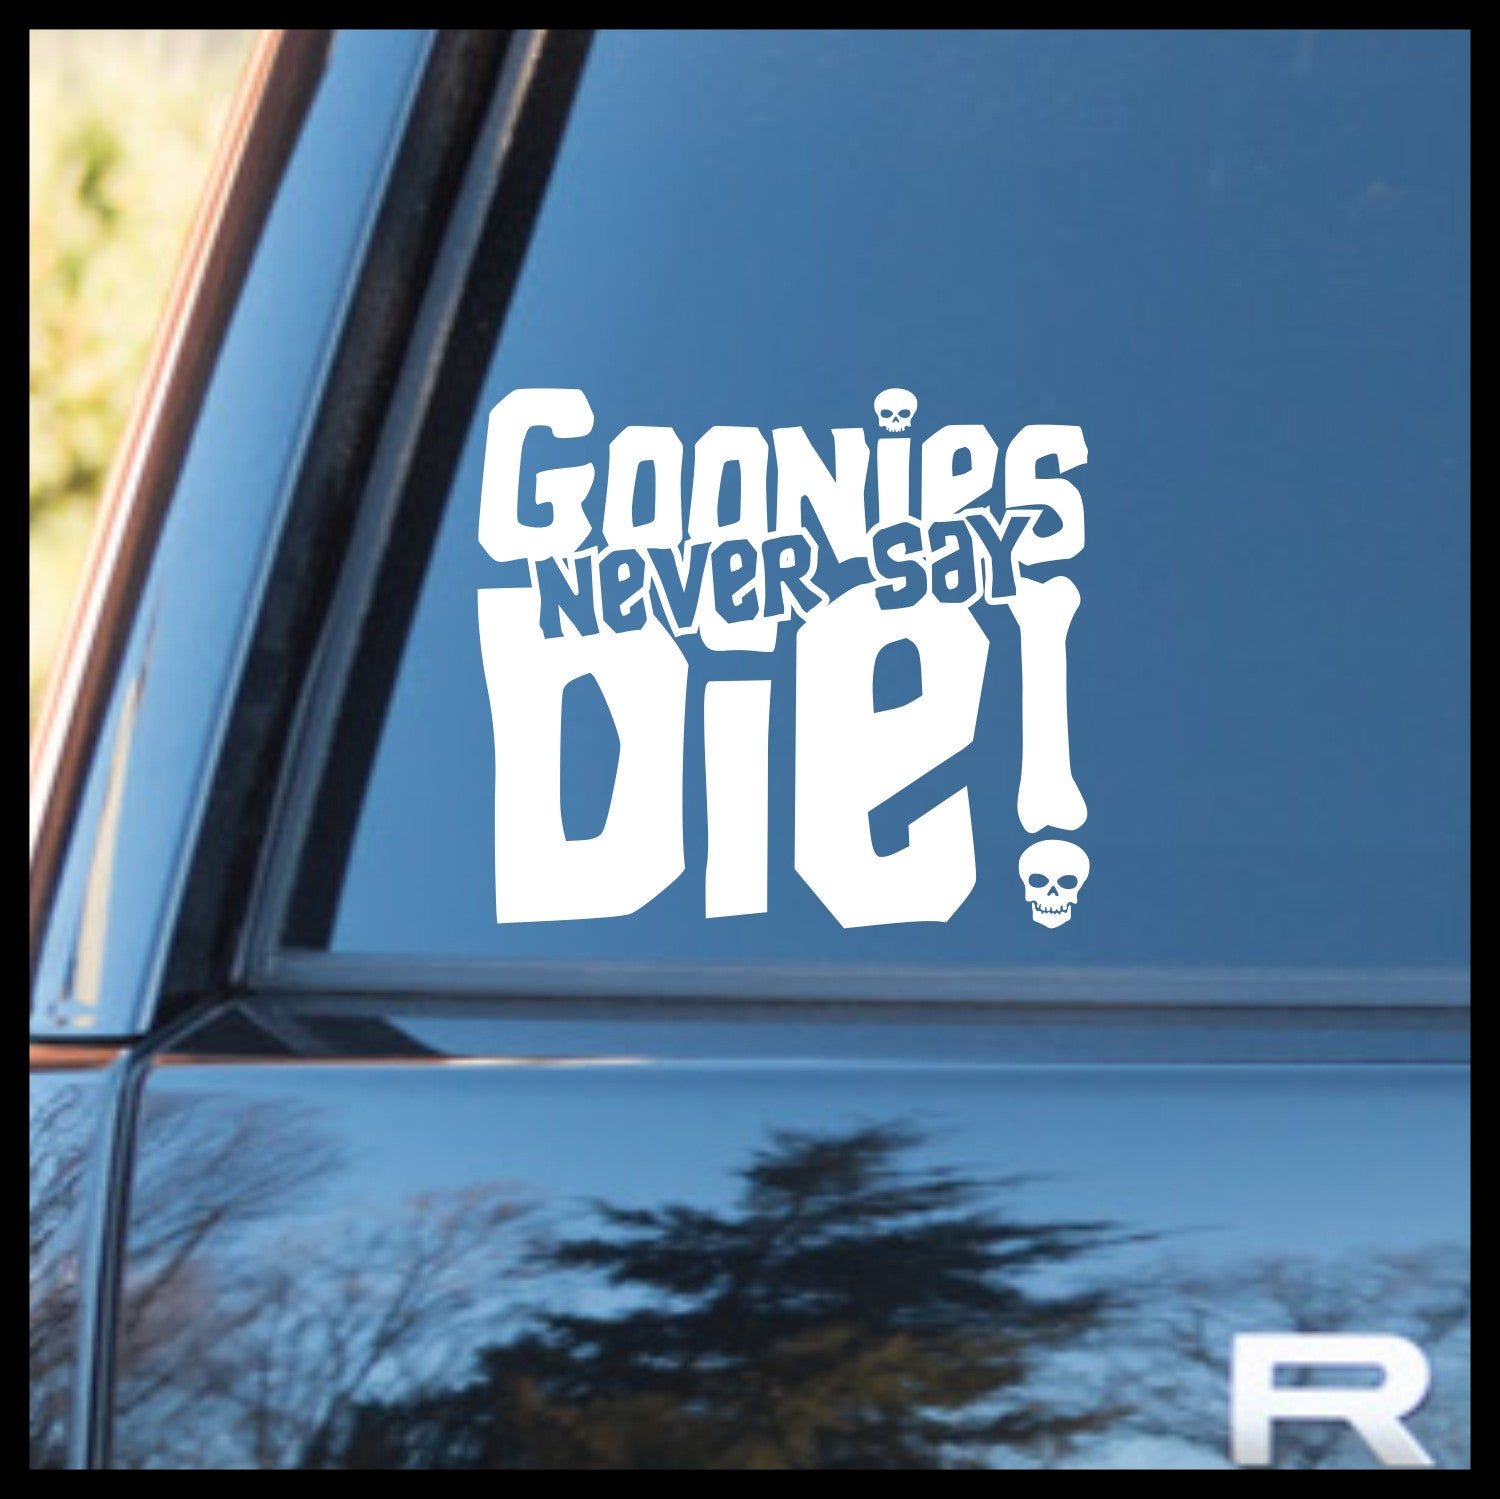 Goonies Never Say Die, Goonies-inspired Vinyl Car/Laptop Decal